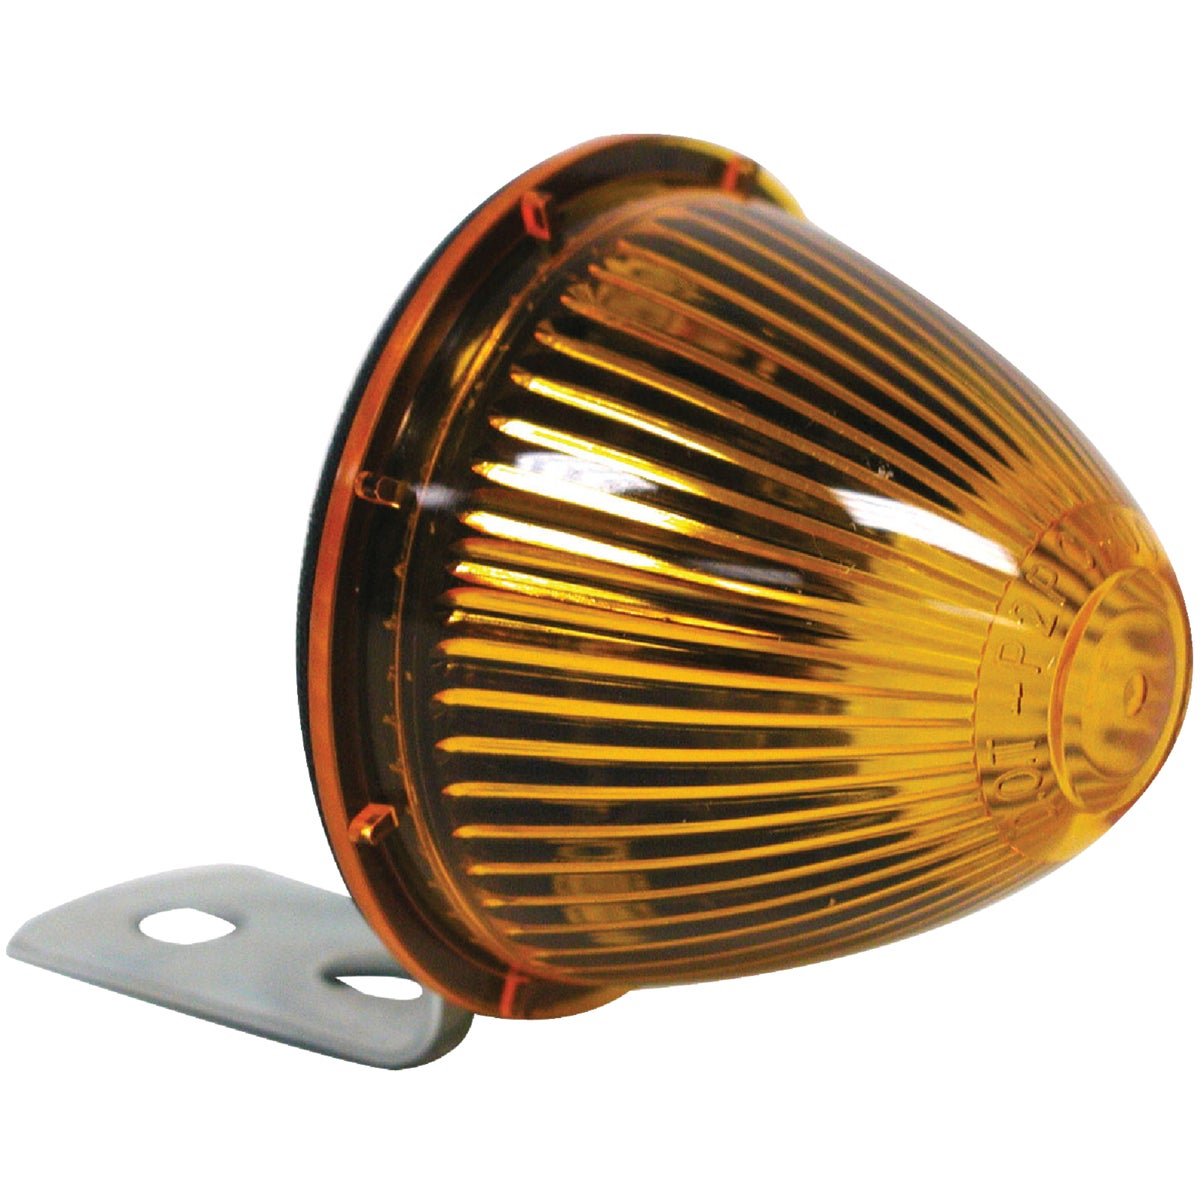 AM CLEARANCE LIGHT